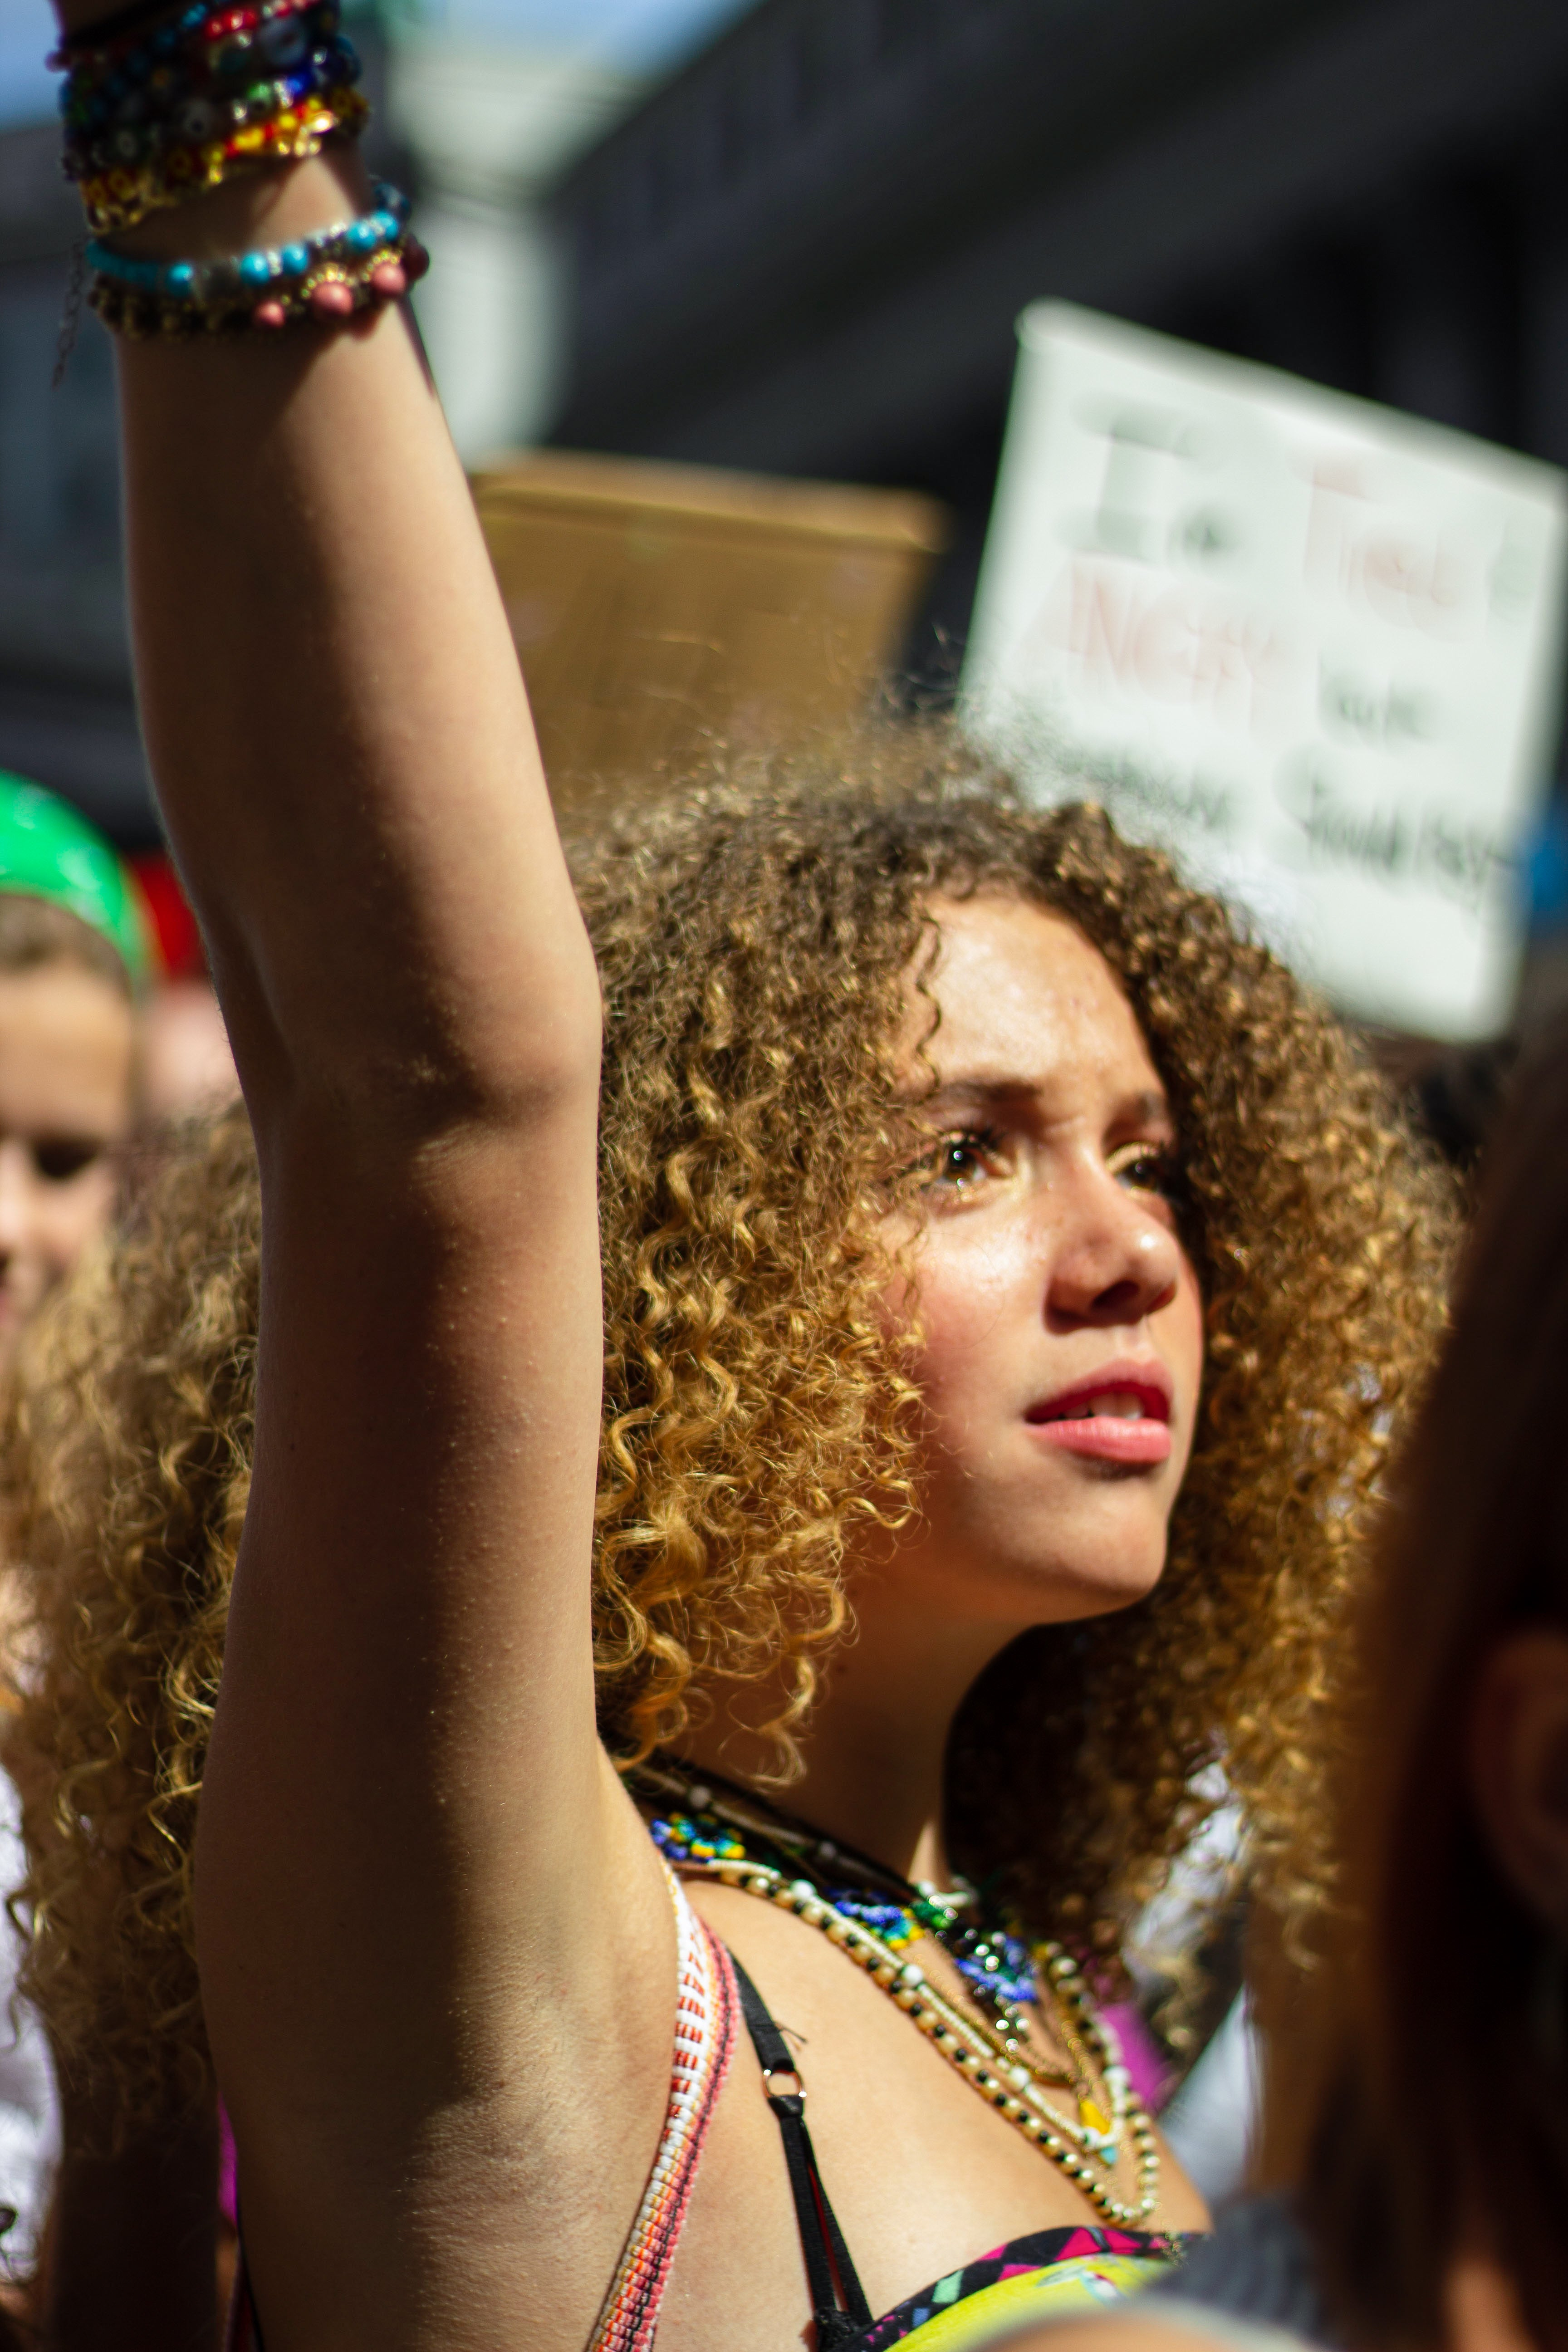 'This Is Only The Beginning:' Young People Demand Justice At New York's Climate Strikes